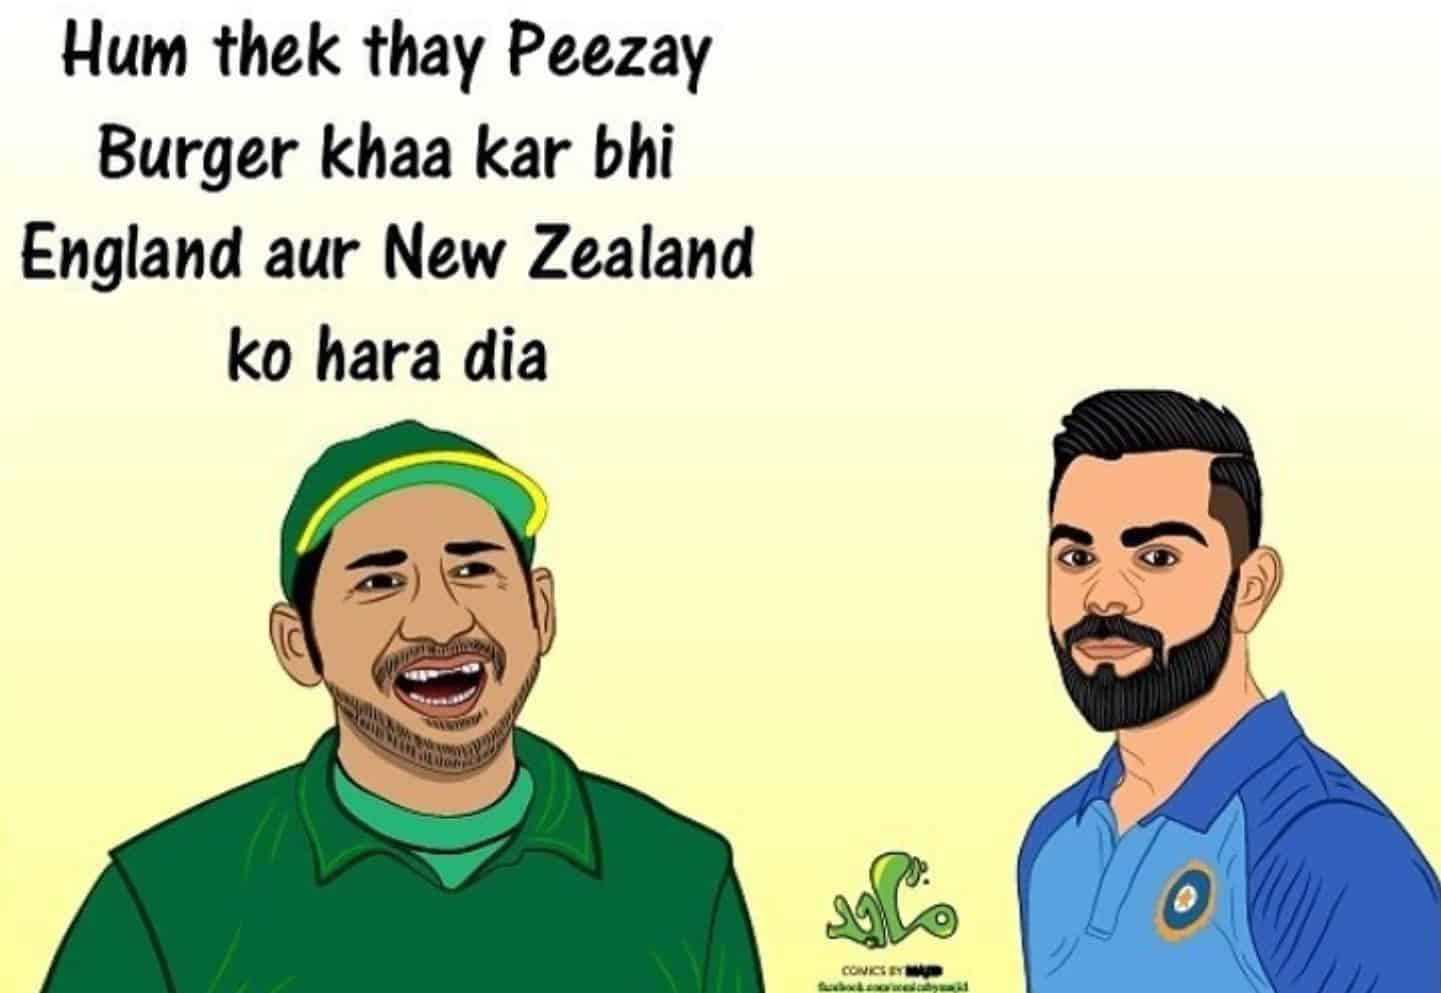 India Vs New Zealand Worldcup 2019 Memes (11)